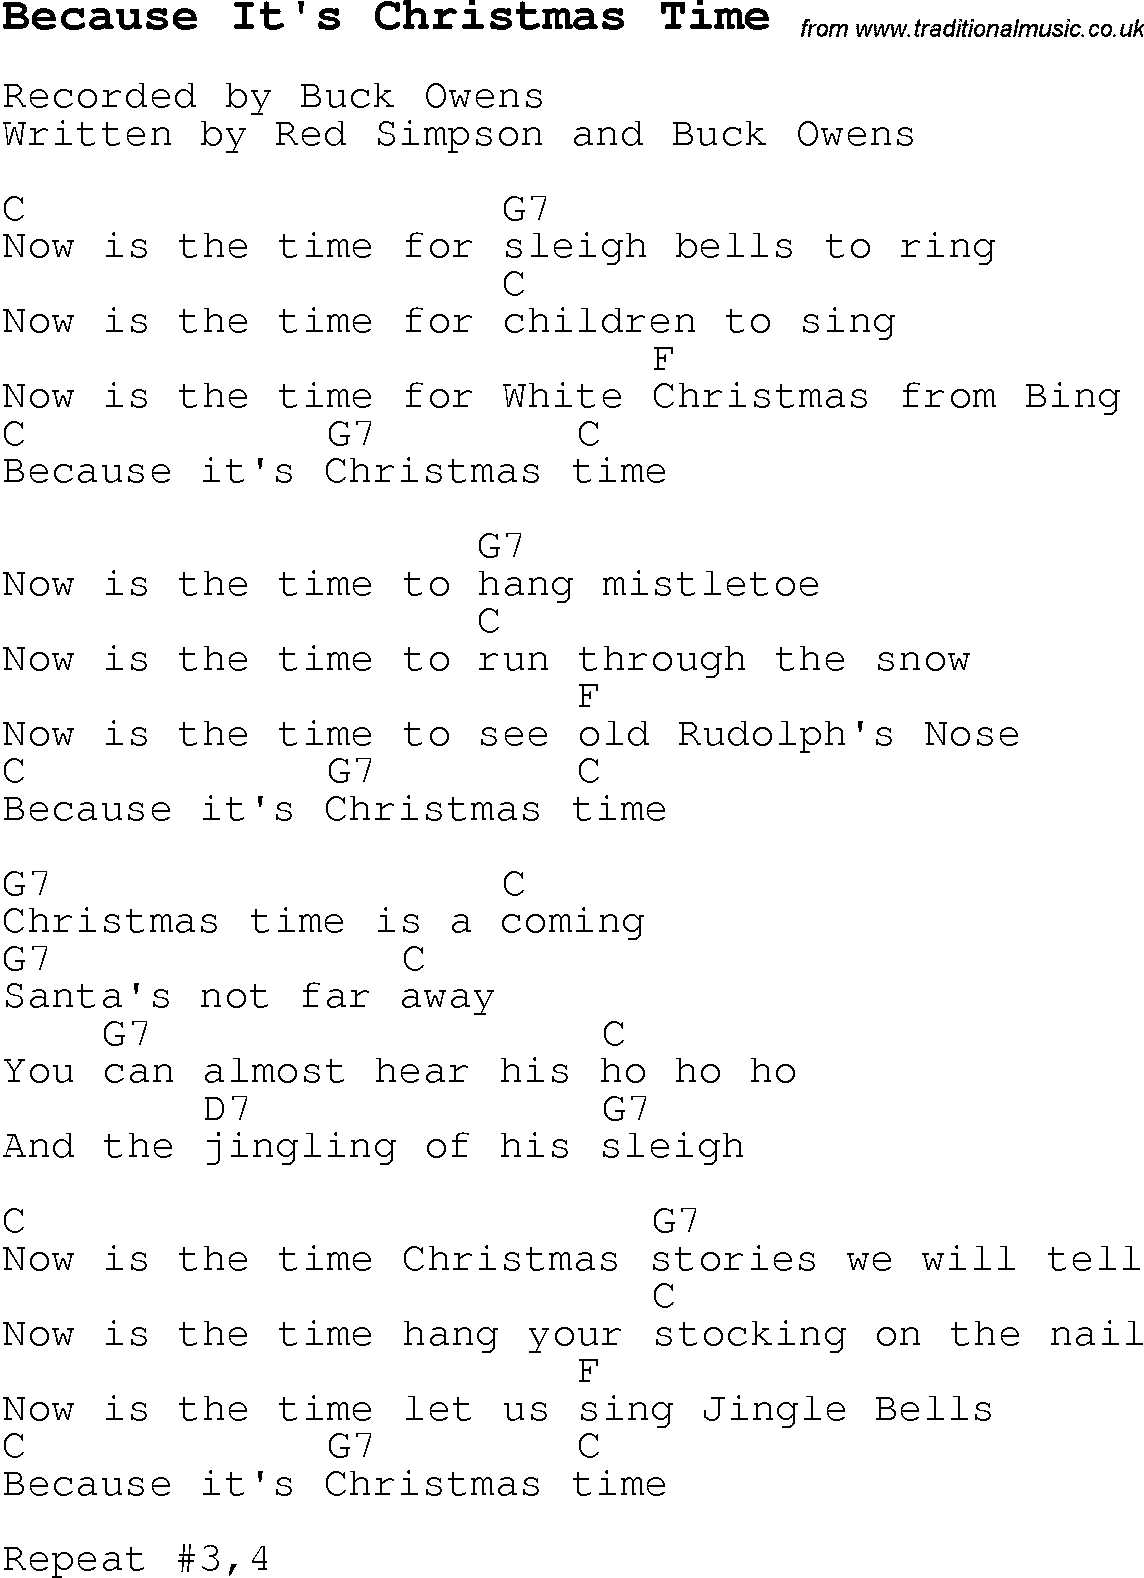 Christmas Carol/Song lyrics with chords for Because It's Christmas ...